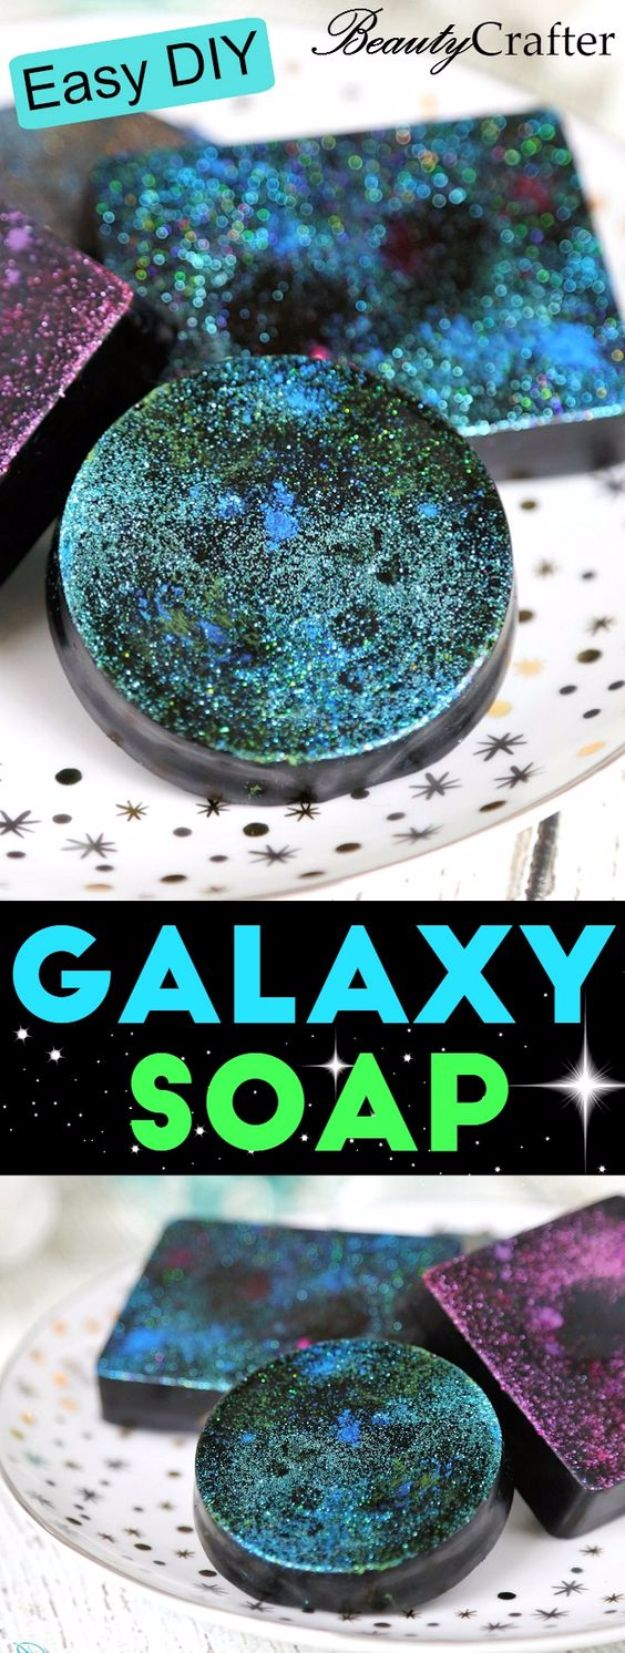 Galaxy DIY Crafts - DIY Galaxy Soap - Easy Room Decor, Cool Clothes, Fun Fabric Ideas and Painting Projects - Food, Cookies and Cupcake Recipes - Nebula Galaxy In A Jar - Art for Your Bedroom - Shirt, Backpack, Soap, Decorations for Teens, Kids and Adults